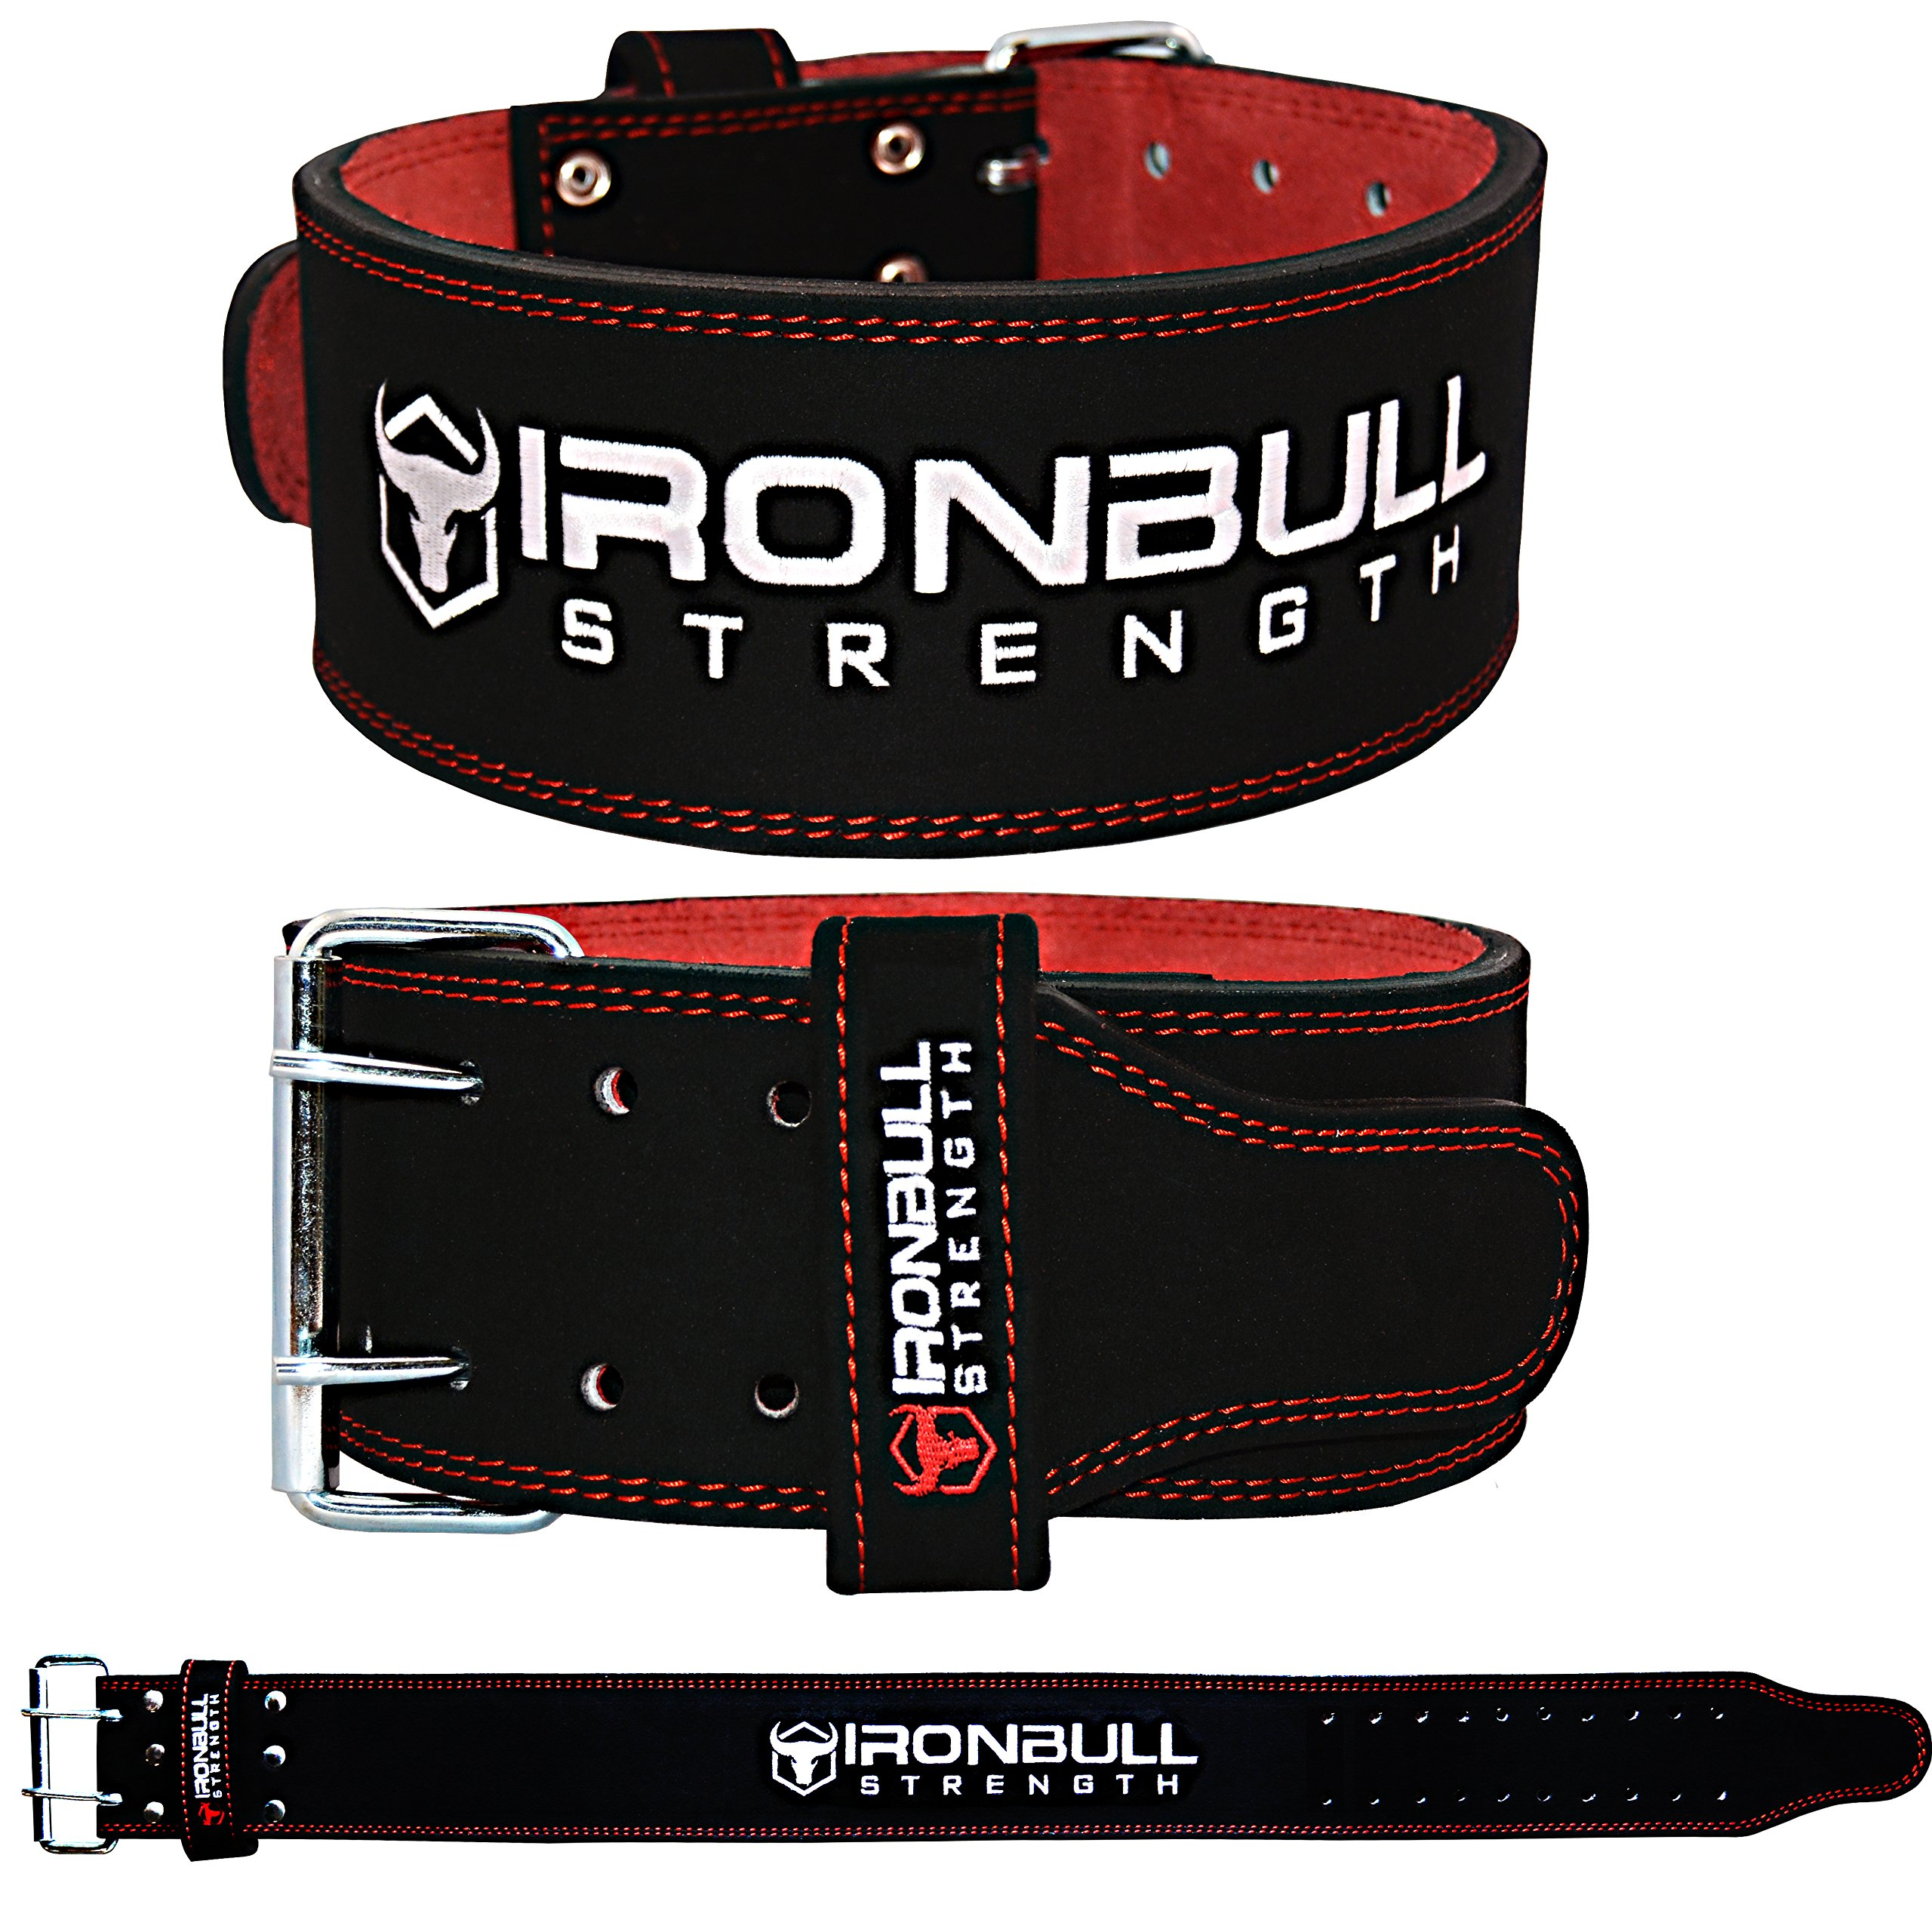 Iron Bull Strength Powerlifting Belt/Weight Lifting Belt - 10mm Double Prong - 4-inch Wide - Advanced Back Support for Weightlifting and Heavy Power Lifting by Iron Bull Strength (Image #3)